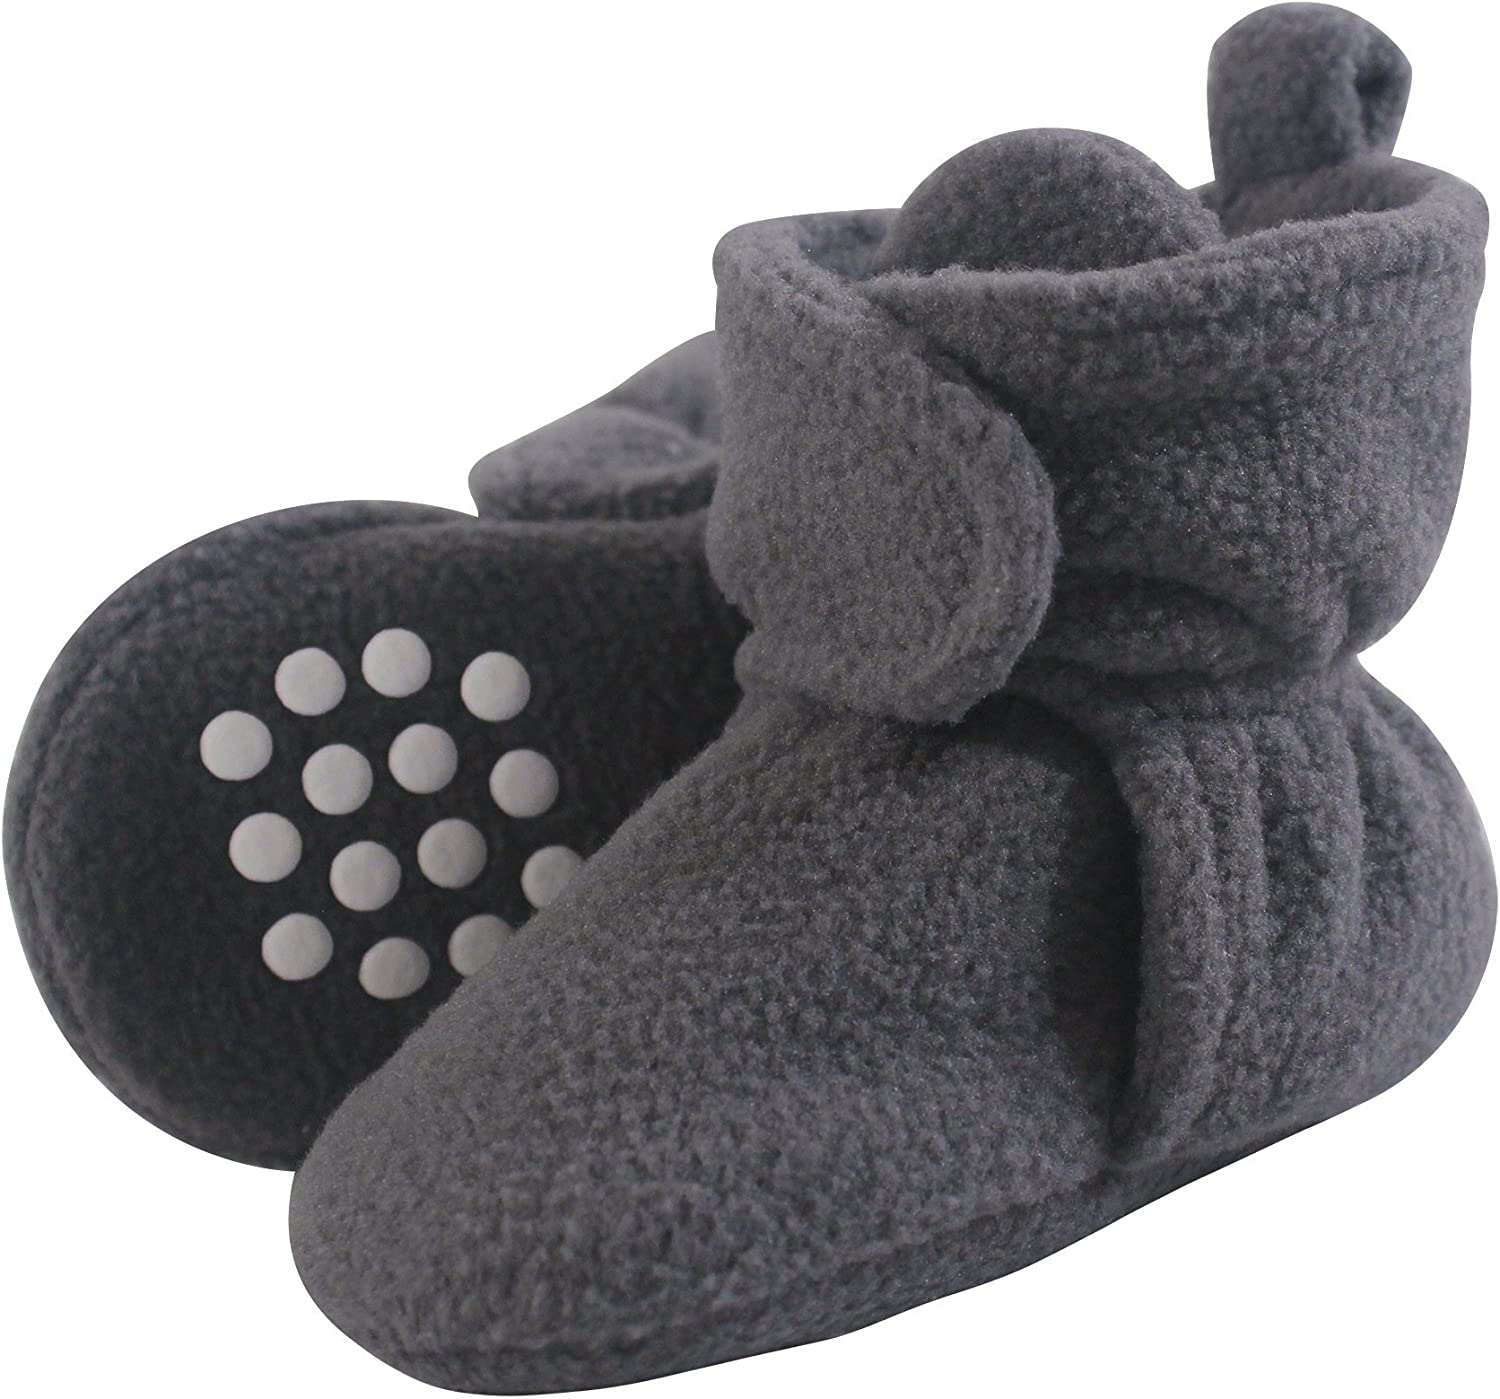 Luvable Friends Unisex Baby Cozy Fleece Booties: Clothing